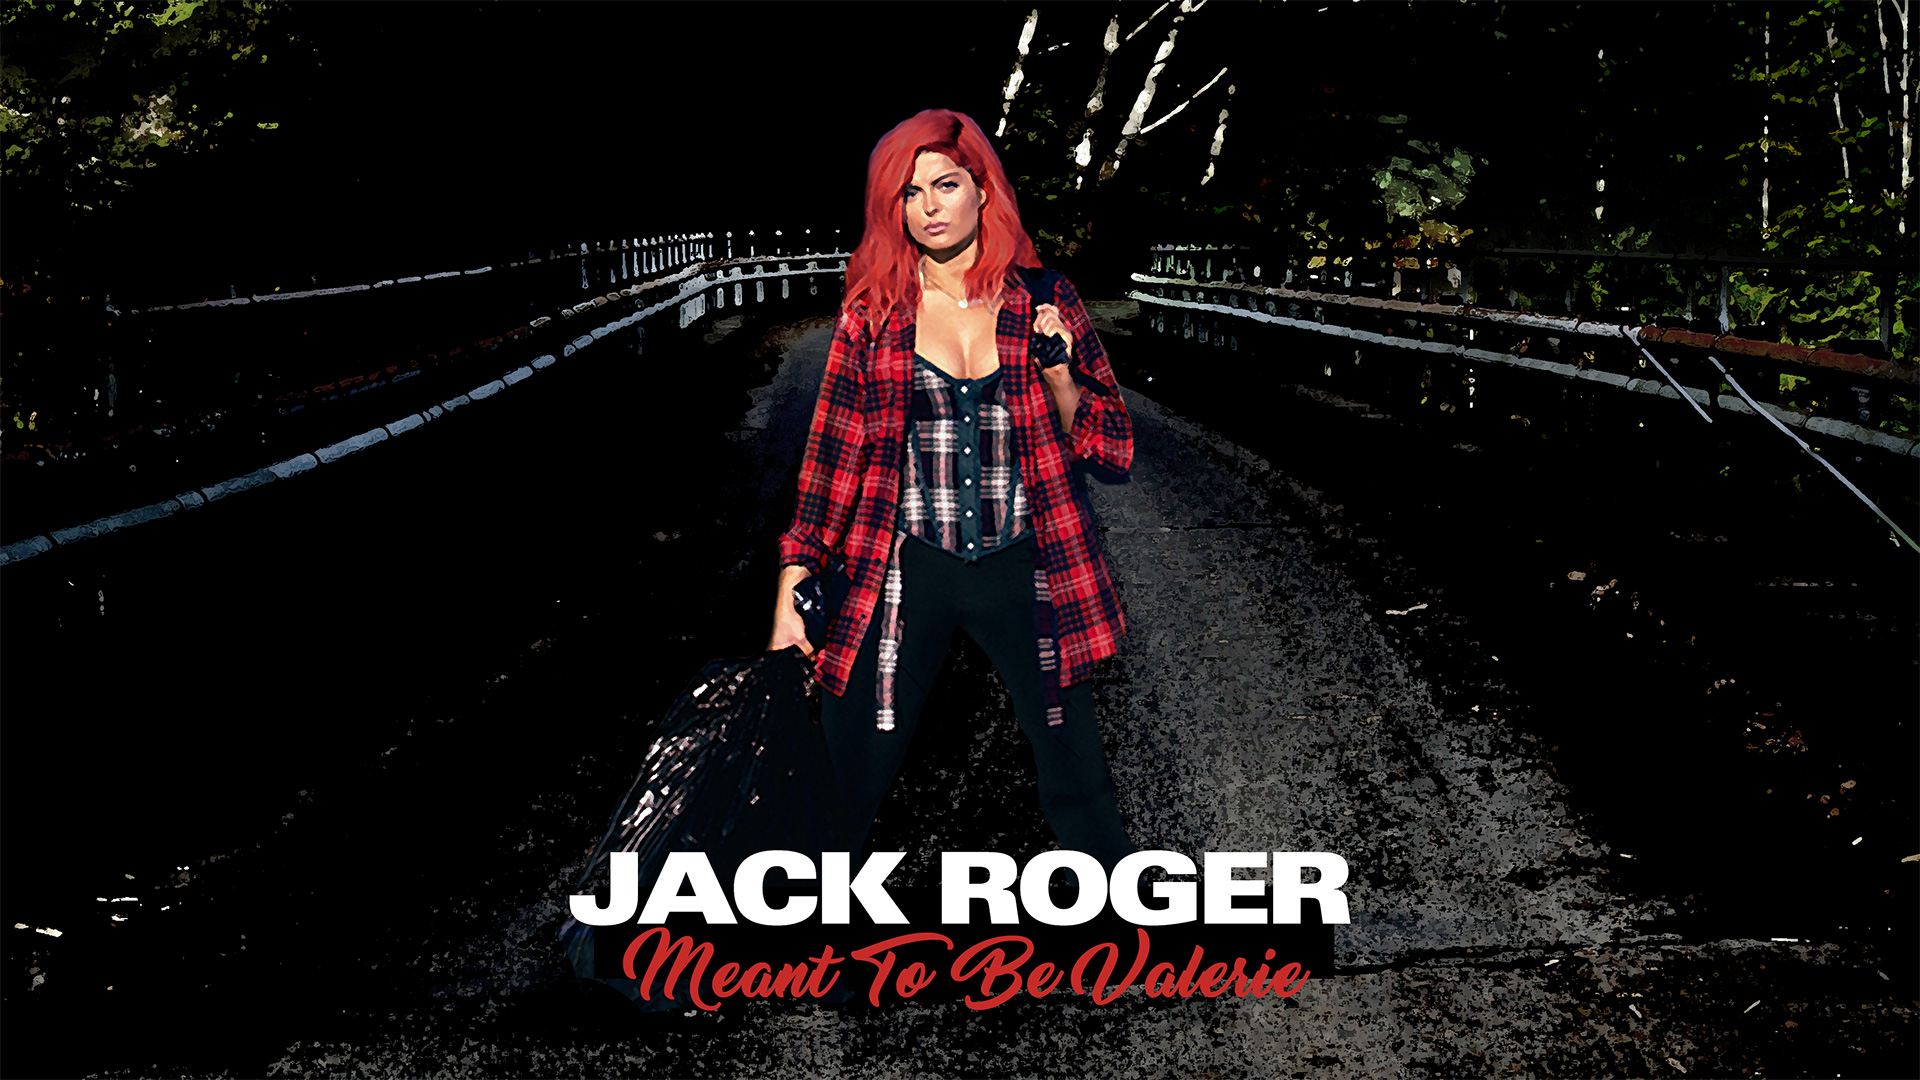 11. Meant To Be Valerie (Bebe Rexha ft. Florida Georgia Line, Steve Windwood, Four Non Blondes)